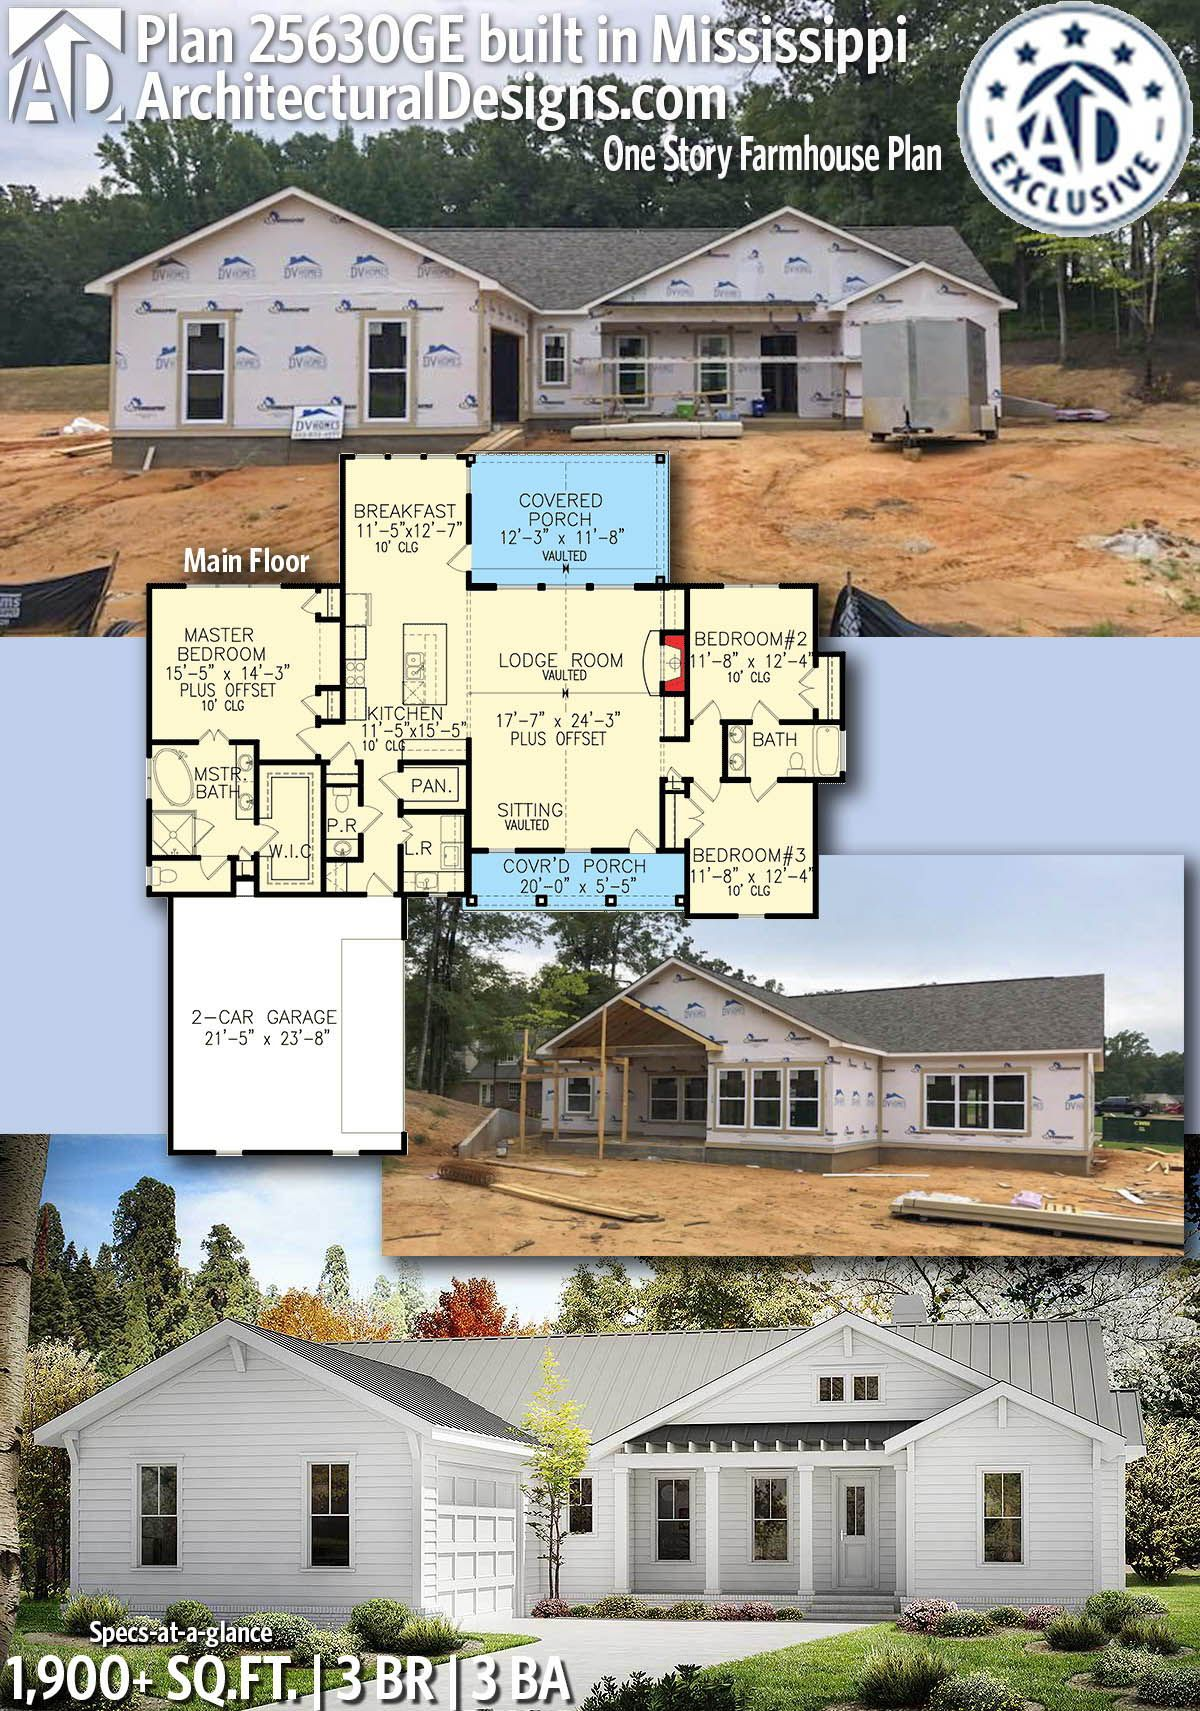 plan 25630ge one story farmhouse plan in 2019 small home plans rh pinterest com